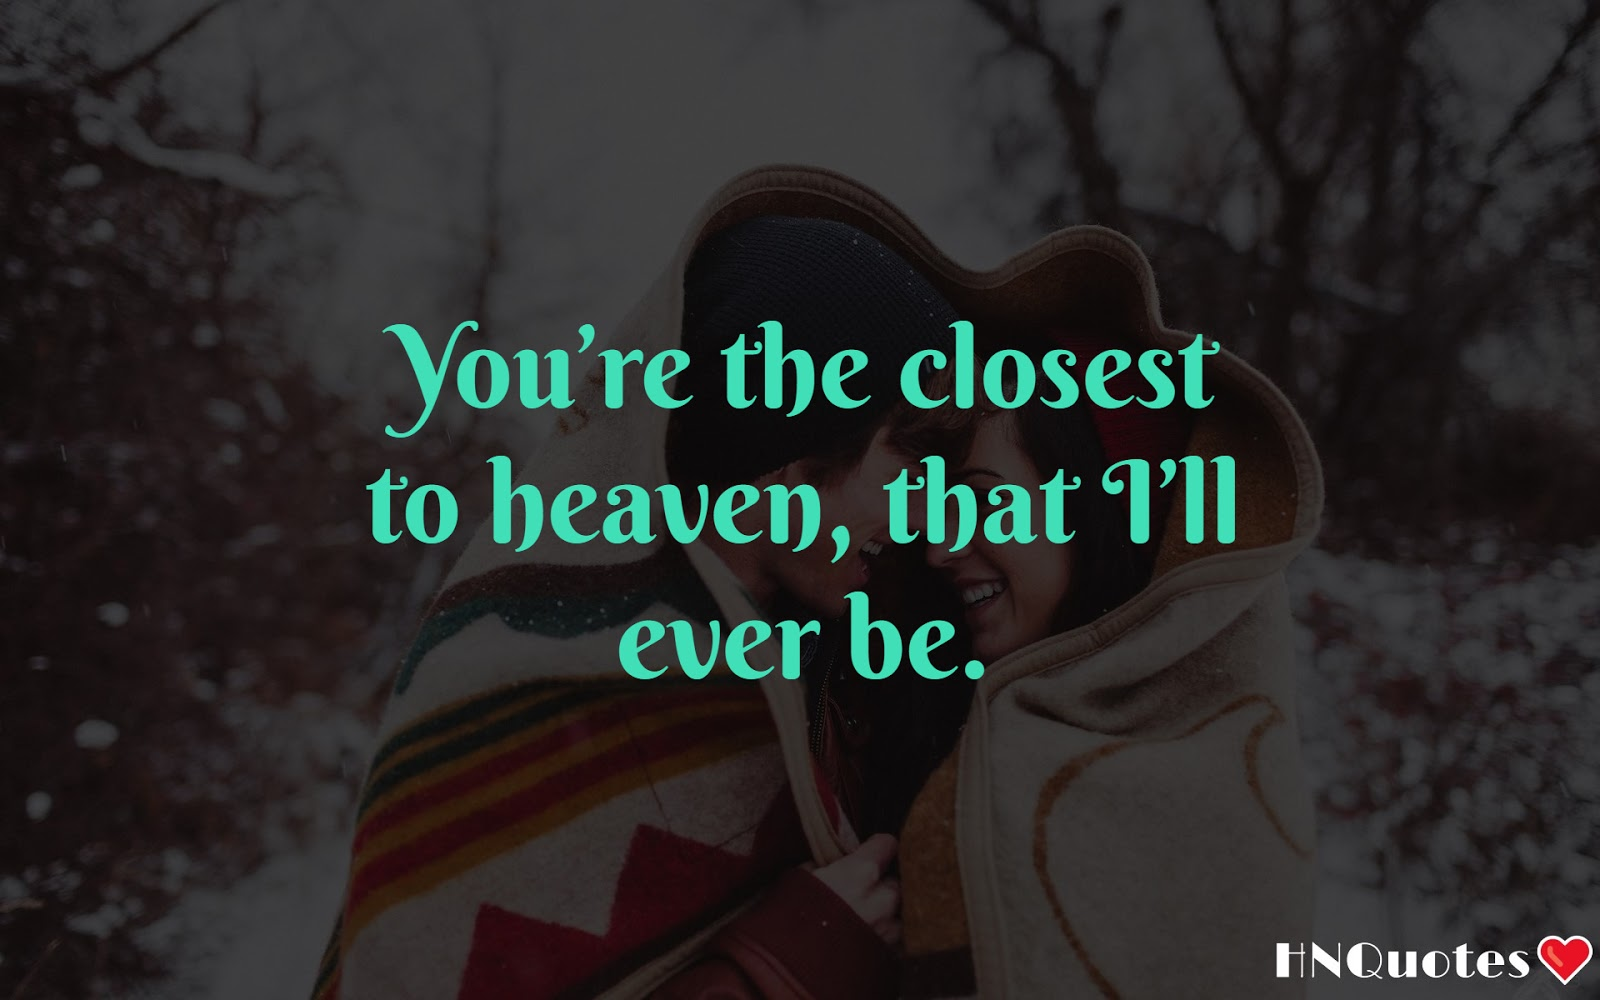 Romantic-Quotes-about-Love-Forever-I-Love-You-69-[HNQuotes]